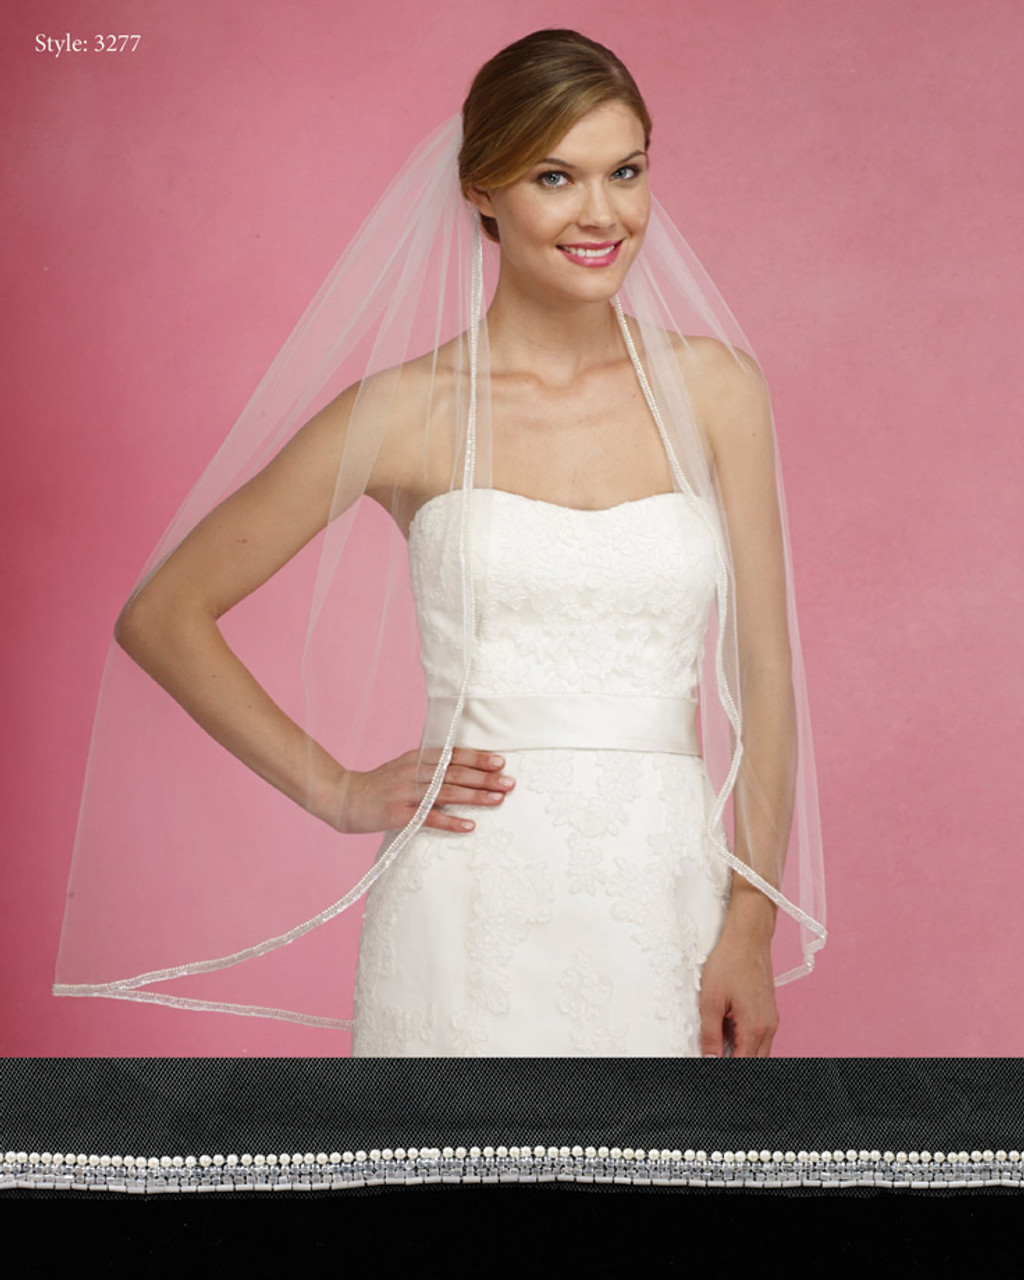 Marionat Bridal Veils 3277- The Bridal Veil Company - 4 Rows of Beads and Pearls